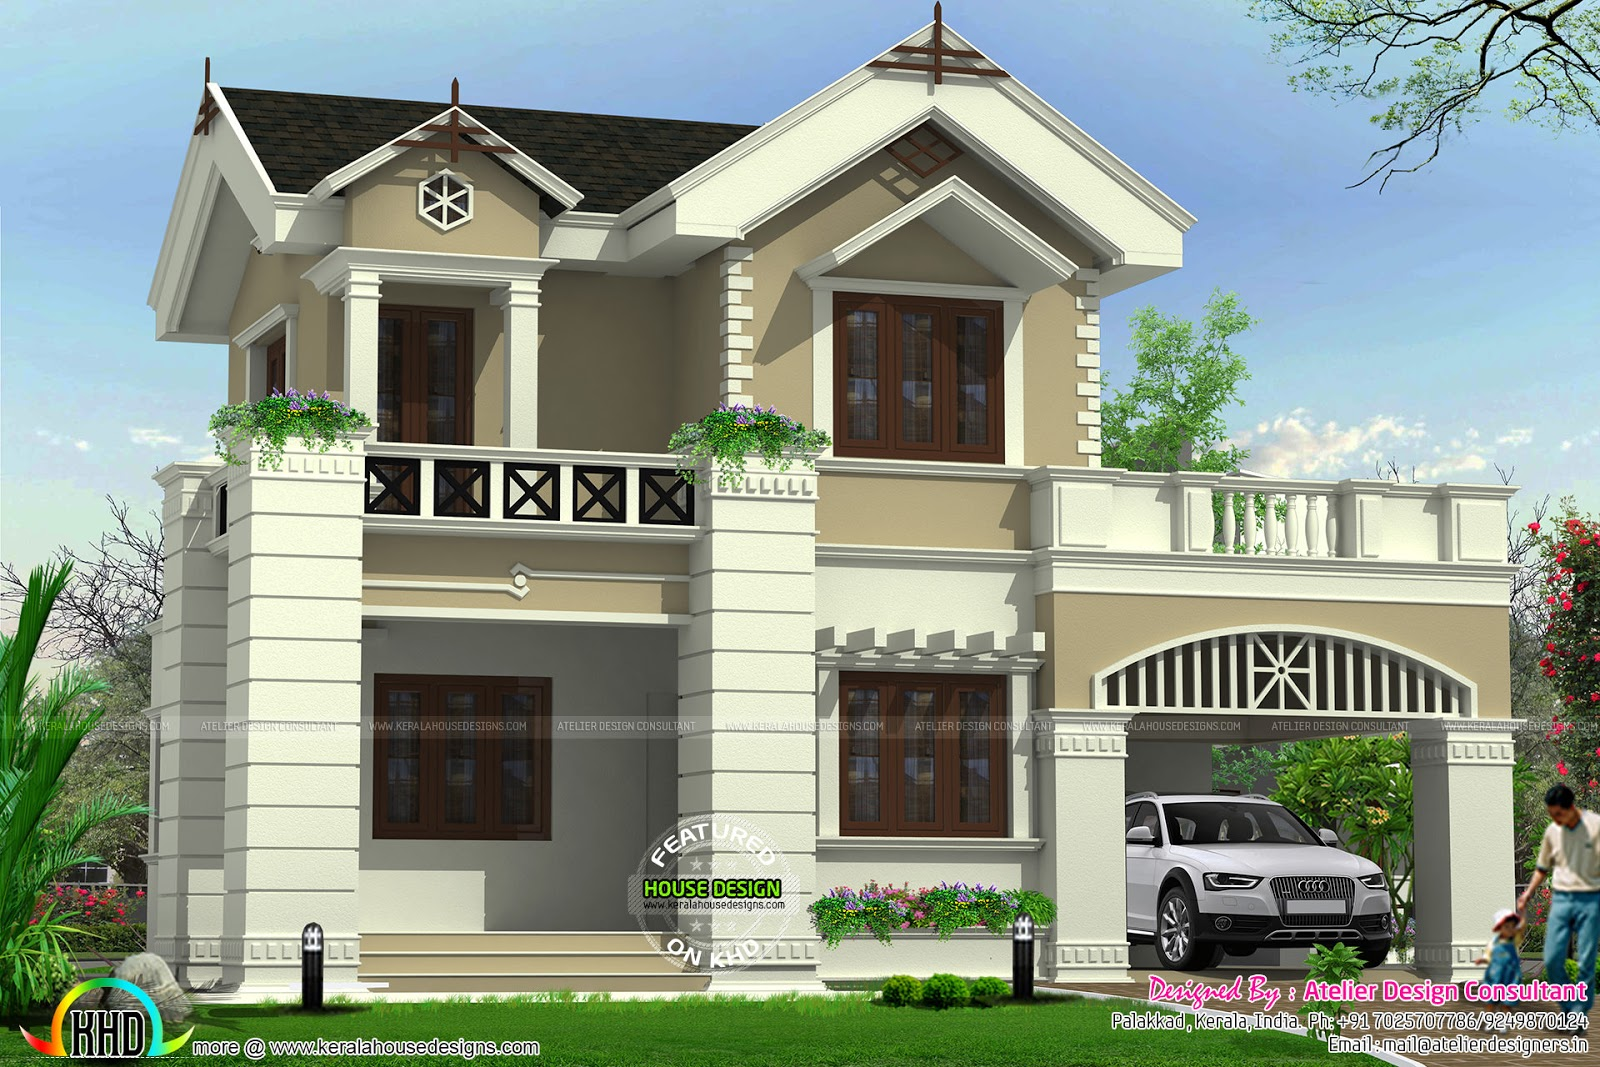 Cute victorian model home kerala home design and floor plans for Cute house plans